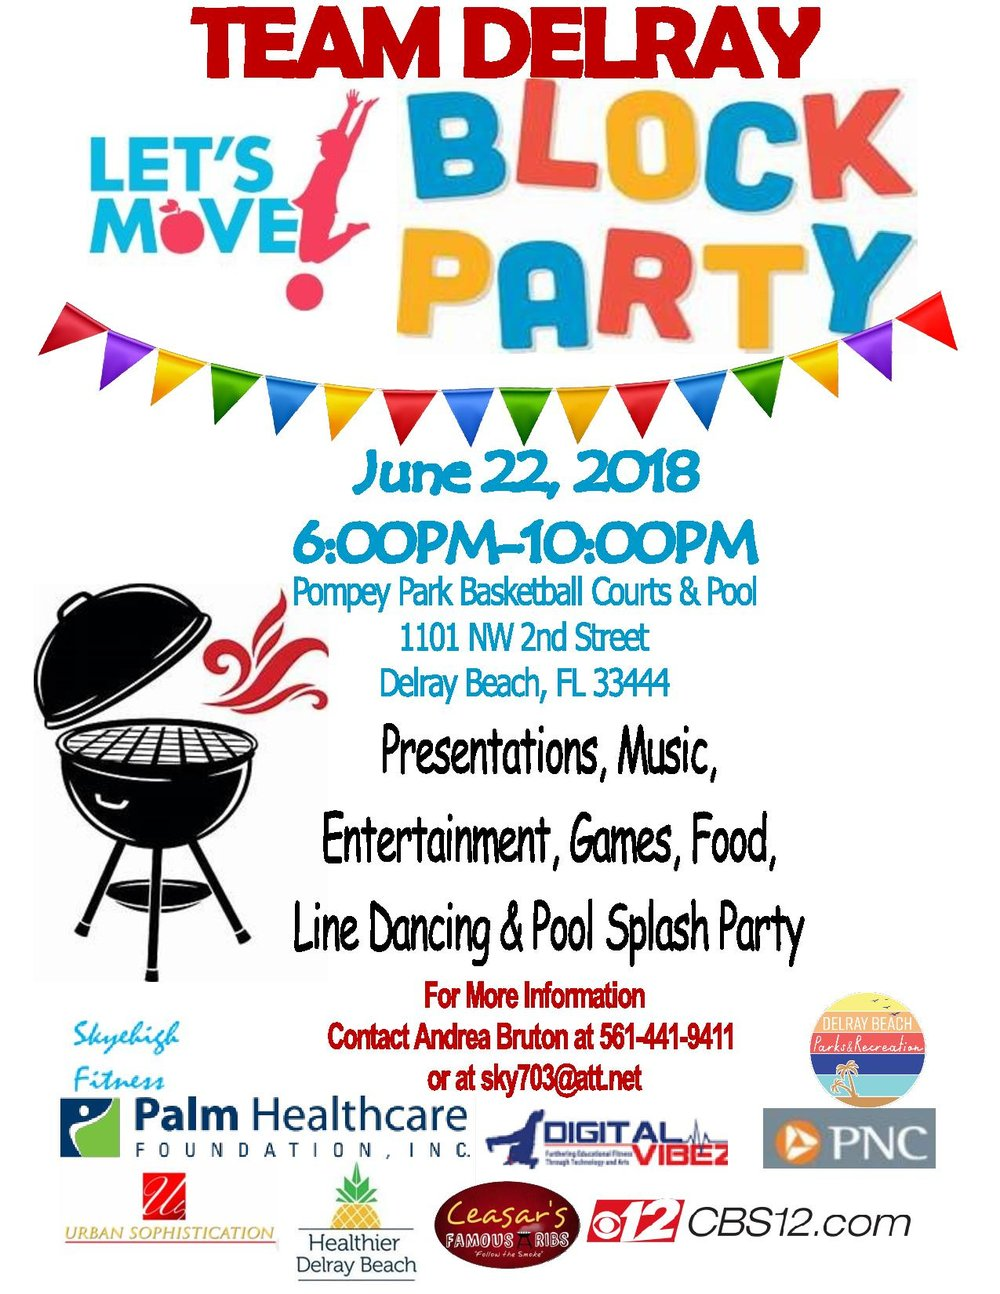 2018 Let s Move Delray BLOCK PARTY flyer-page-001.jpg